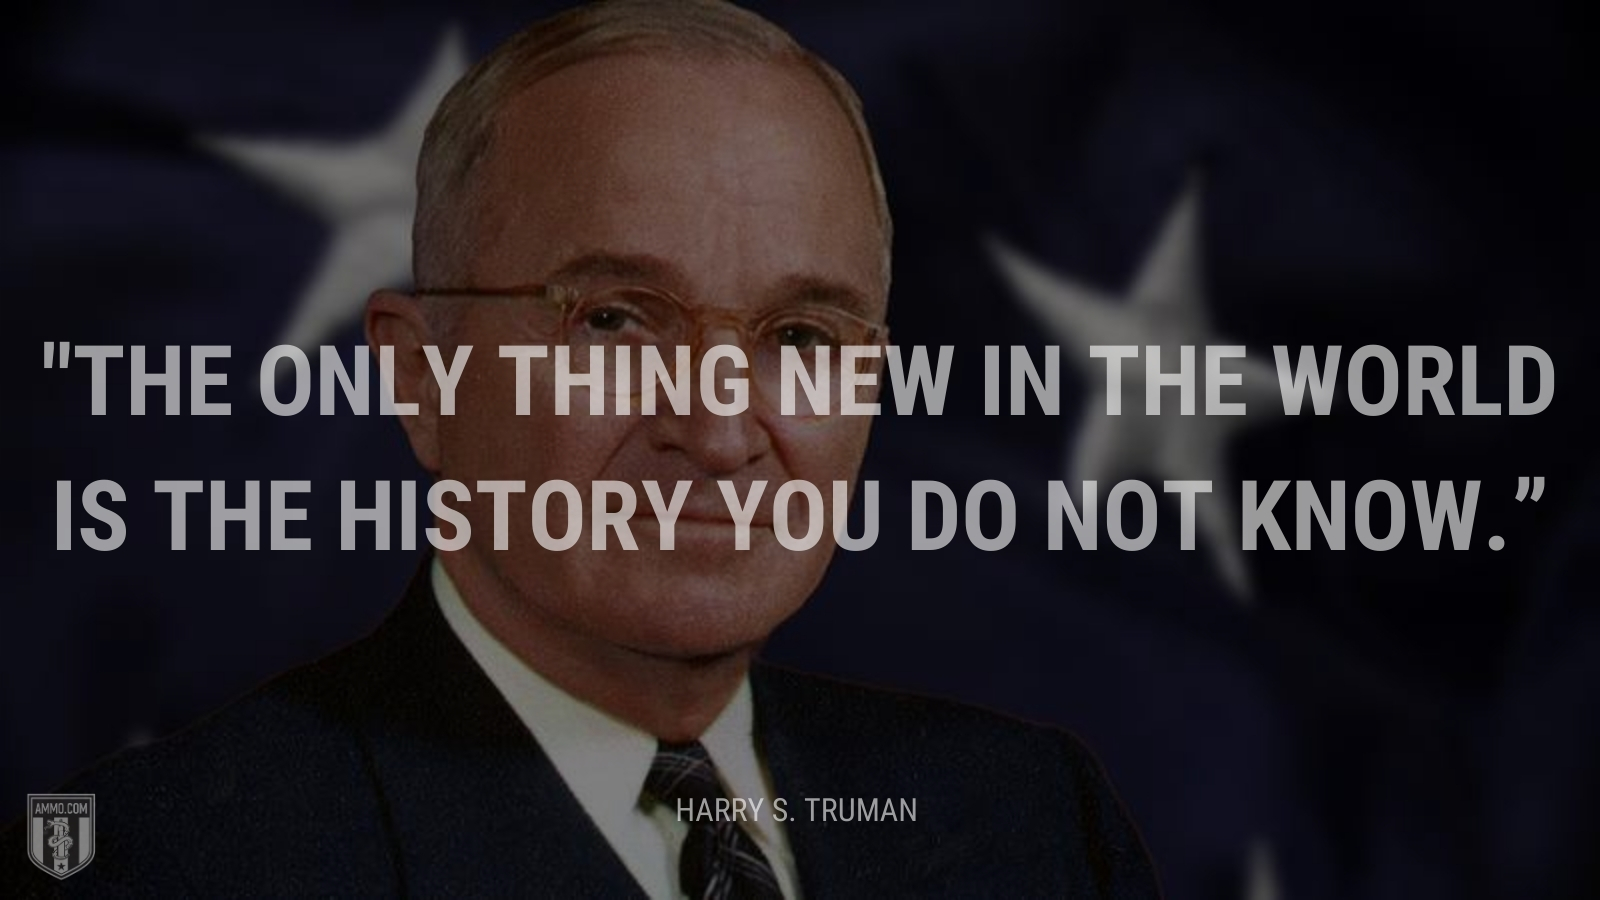 """""""The only thing new in the world is the history you do not know."""" - Harry Truman"""